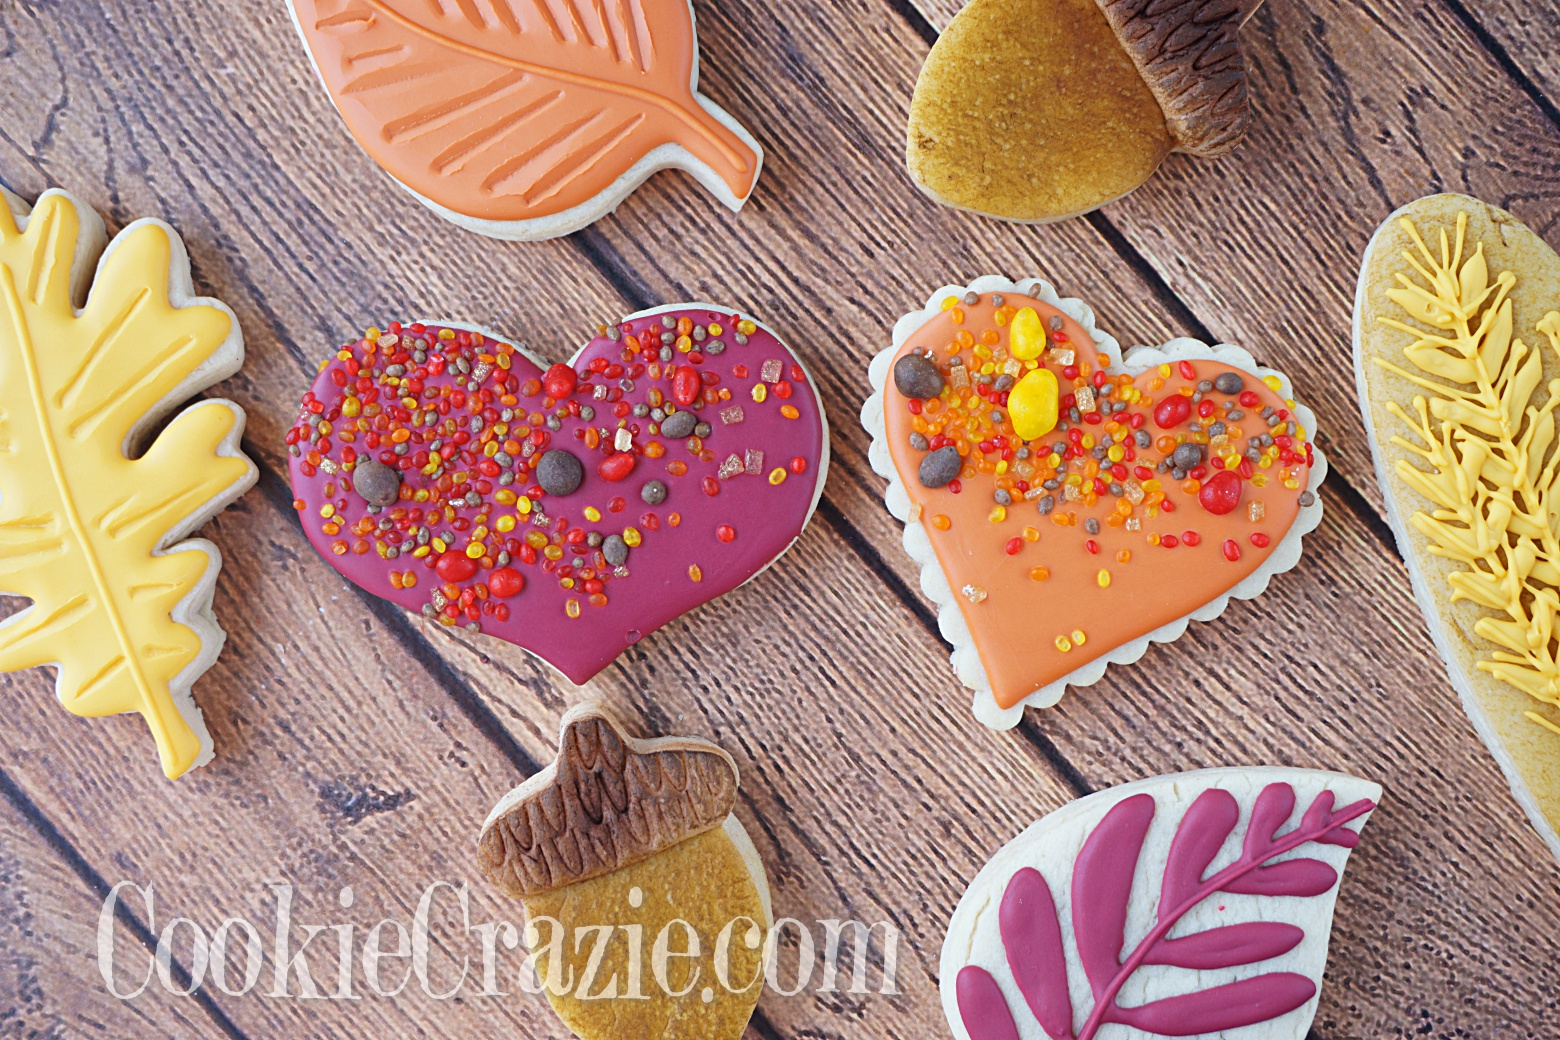 Thanksgiving Heart Decorated Sugar Cookies YouTube video  HERE